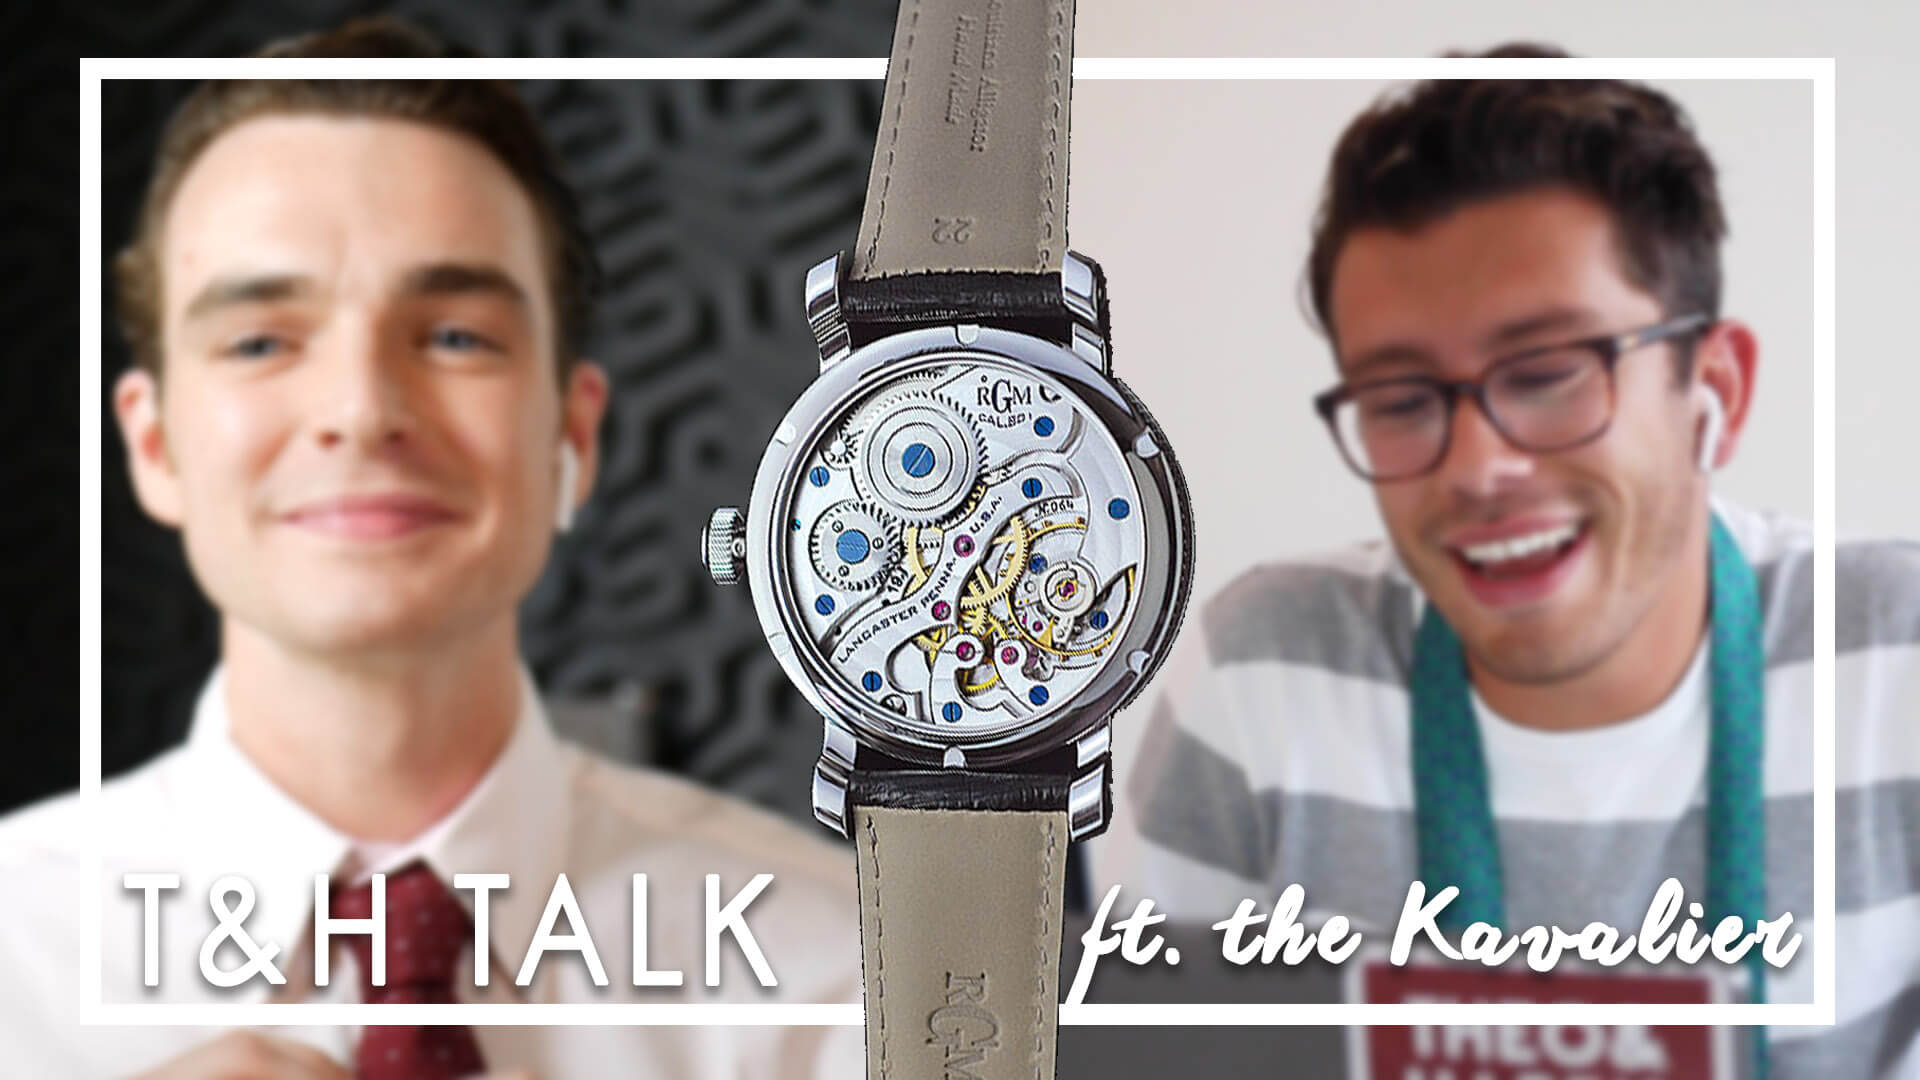 T&H TALKS: American Made Watches and their Premiums (RGM, Shinola, Weiss) feat. Jon Shanahan